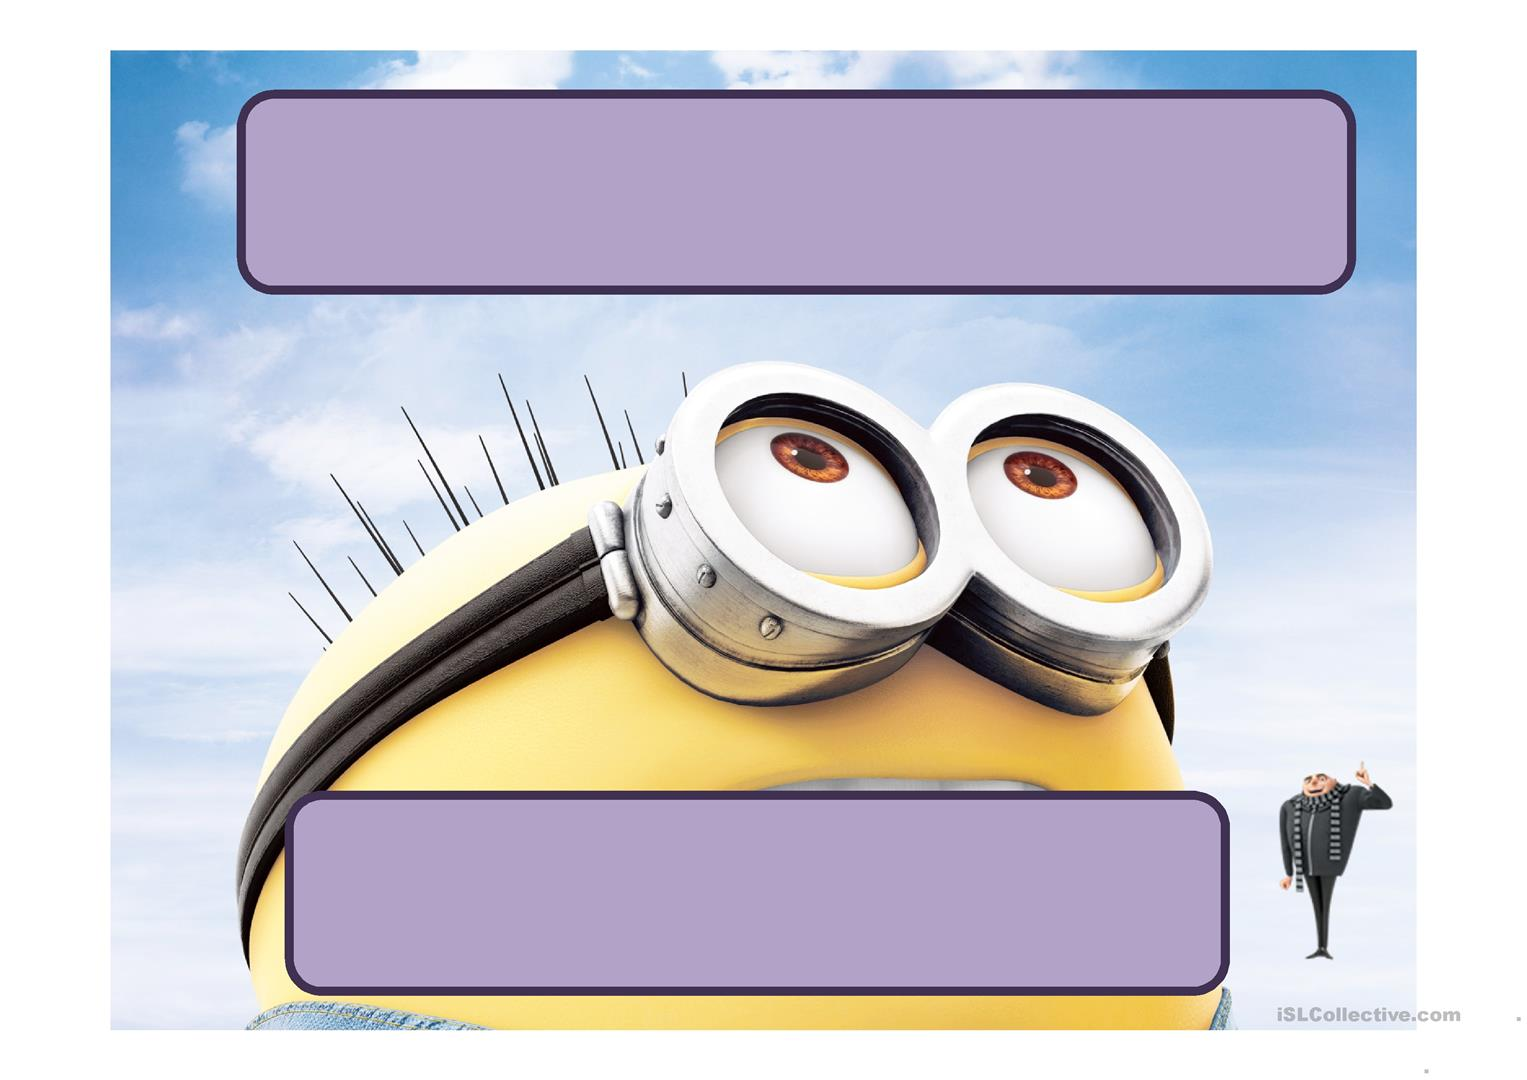 Despicable me powerpoint game worksheet free esl projectable full screen despicable me powerpoint game full screen despicable me powerpoint game toneelgroepblik Image collections